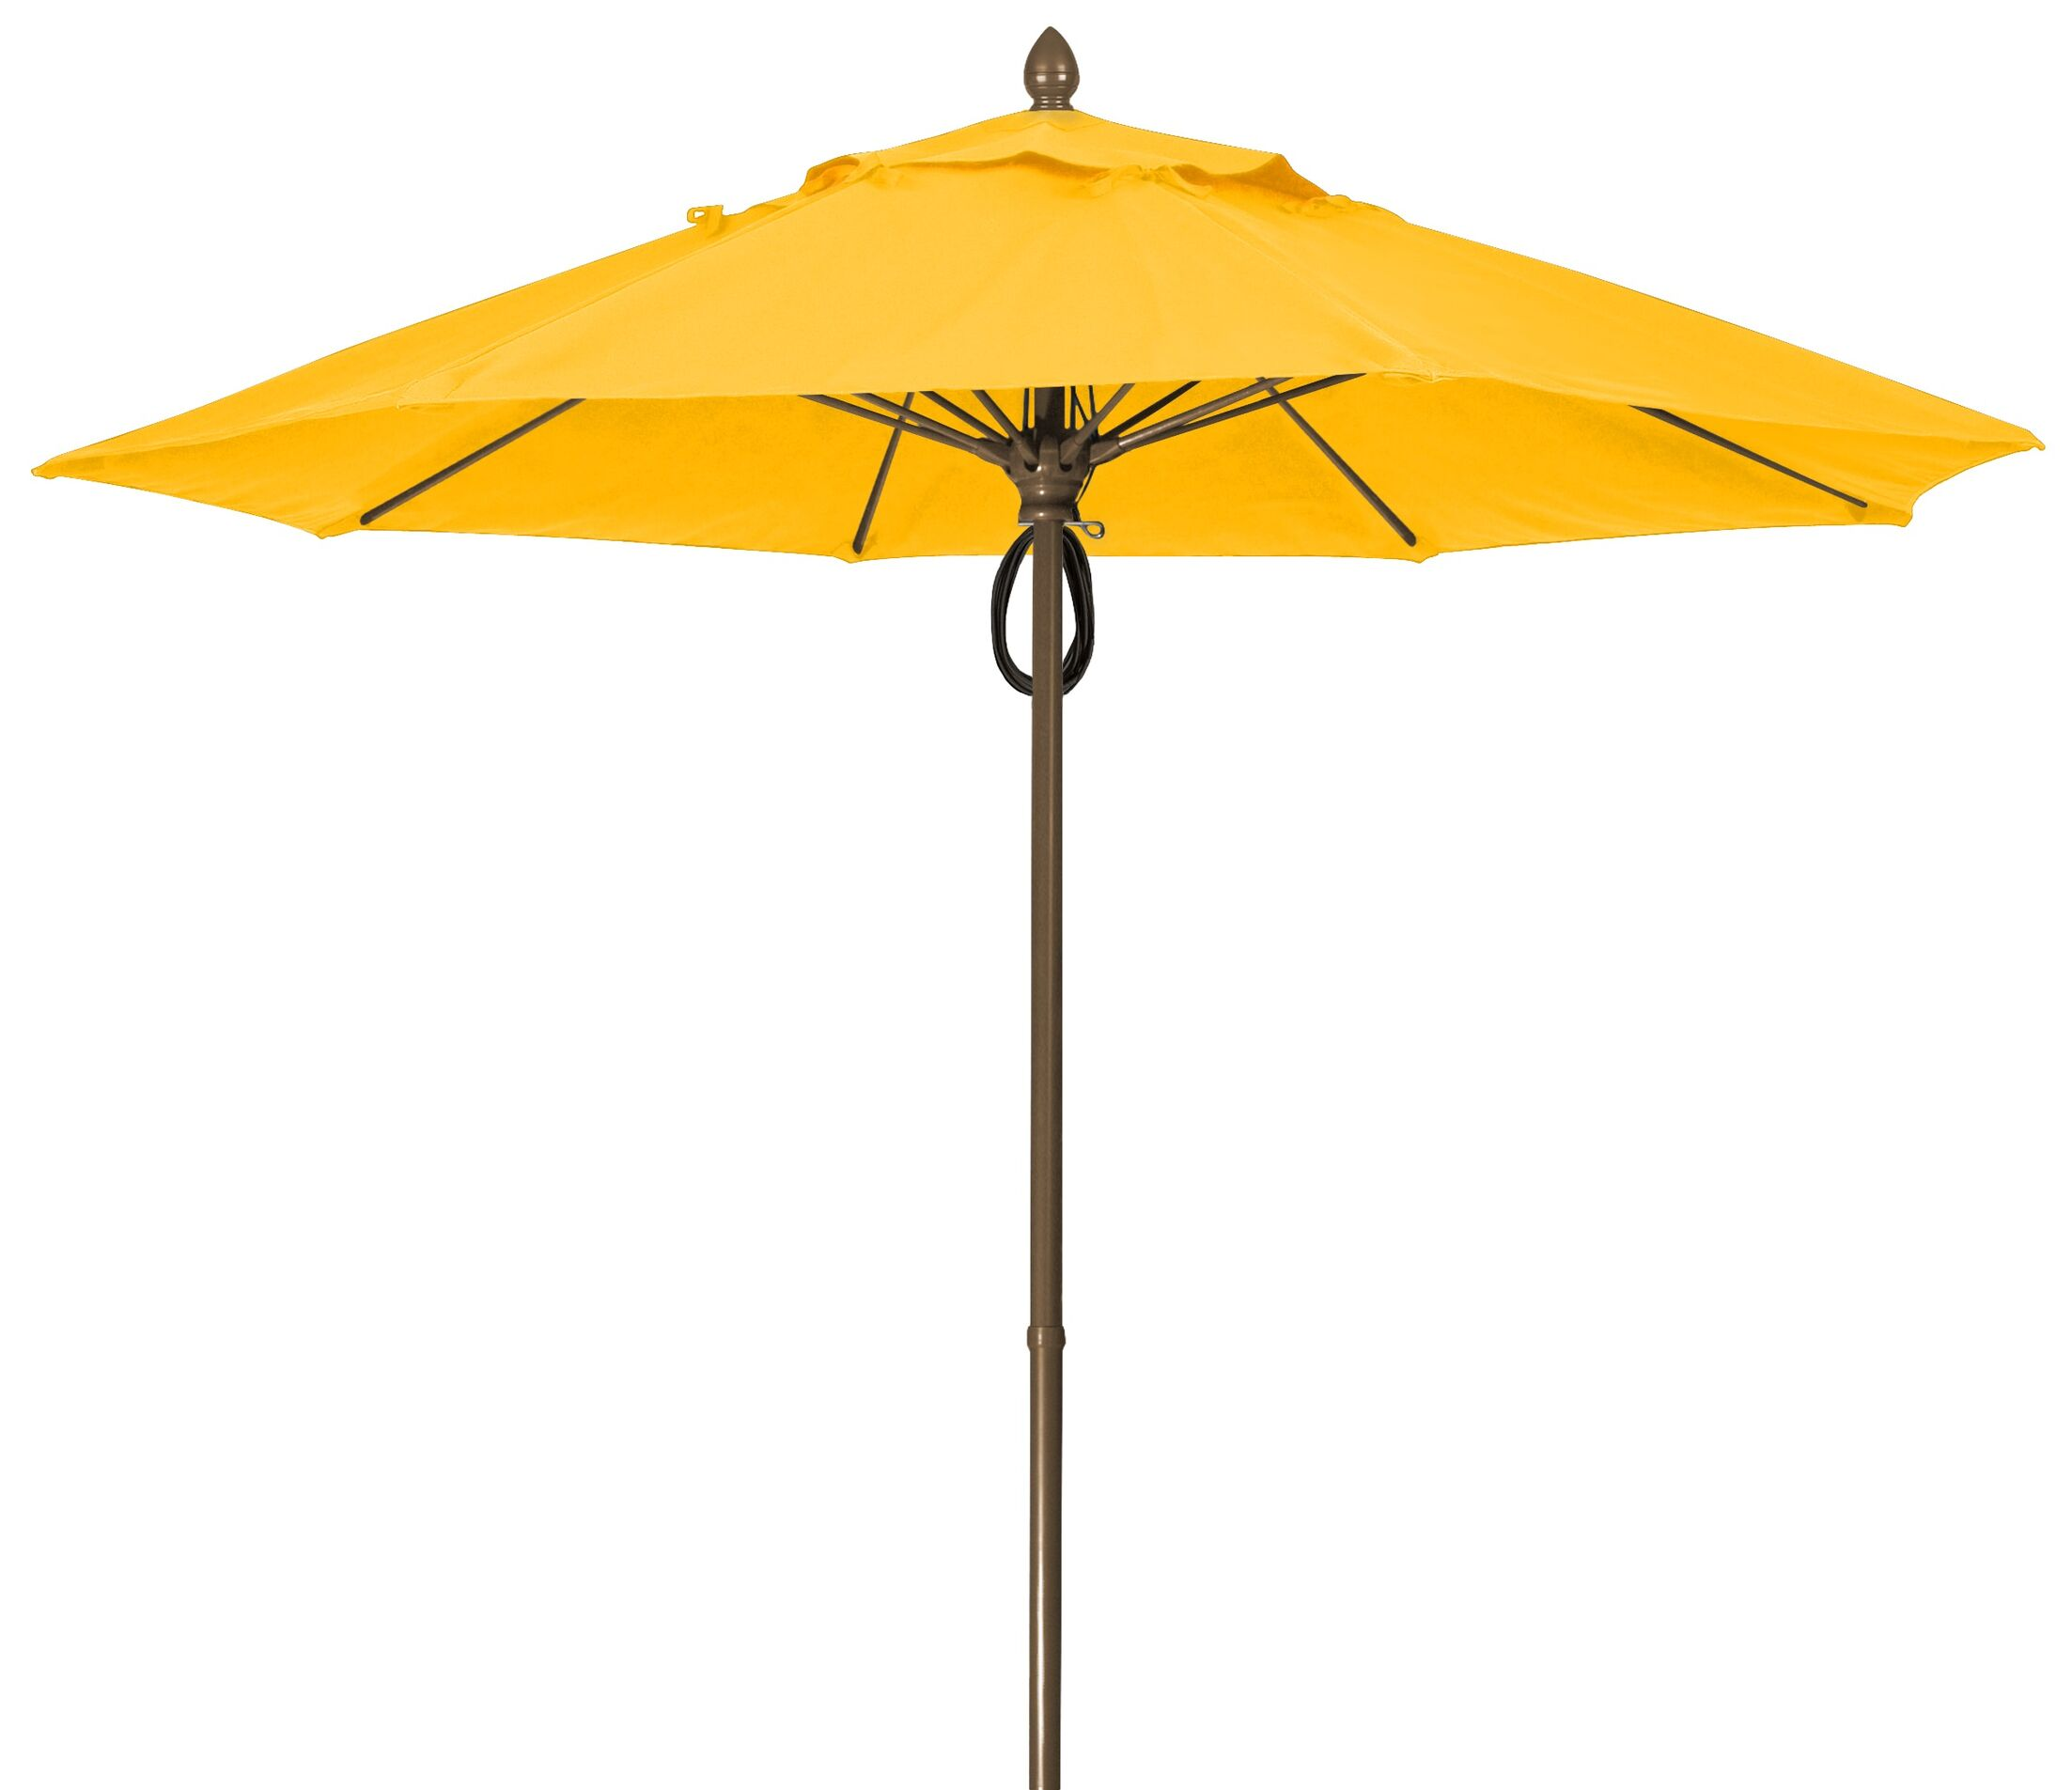 Prestige 9' Market Umbrella Frame Finish: Champagne Bronze, Fabric: Buttercup